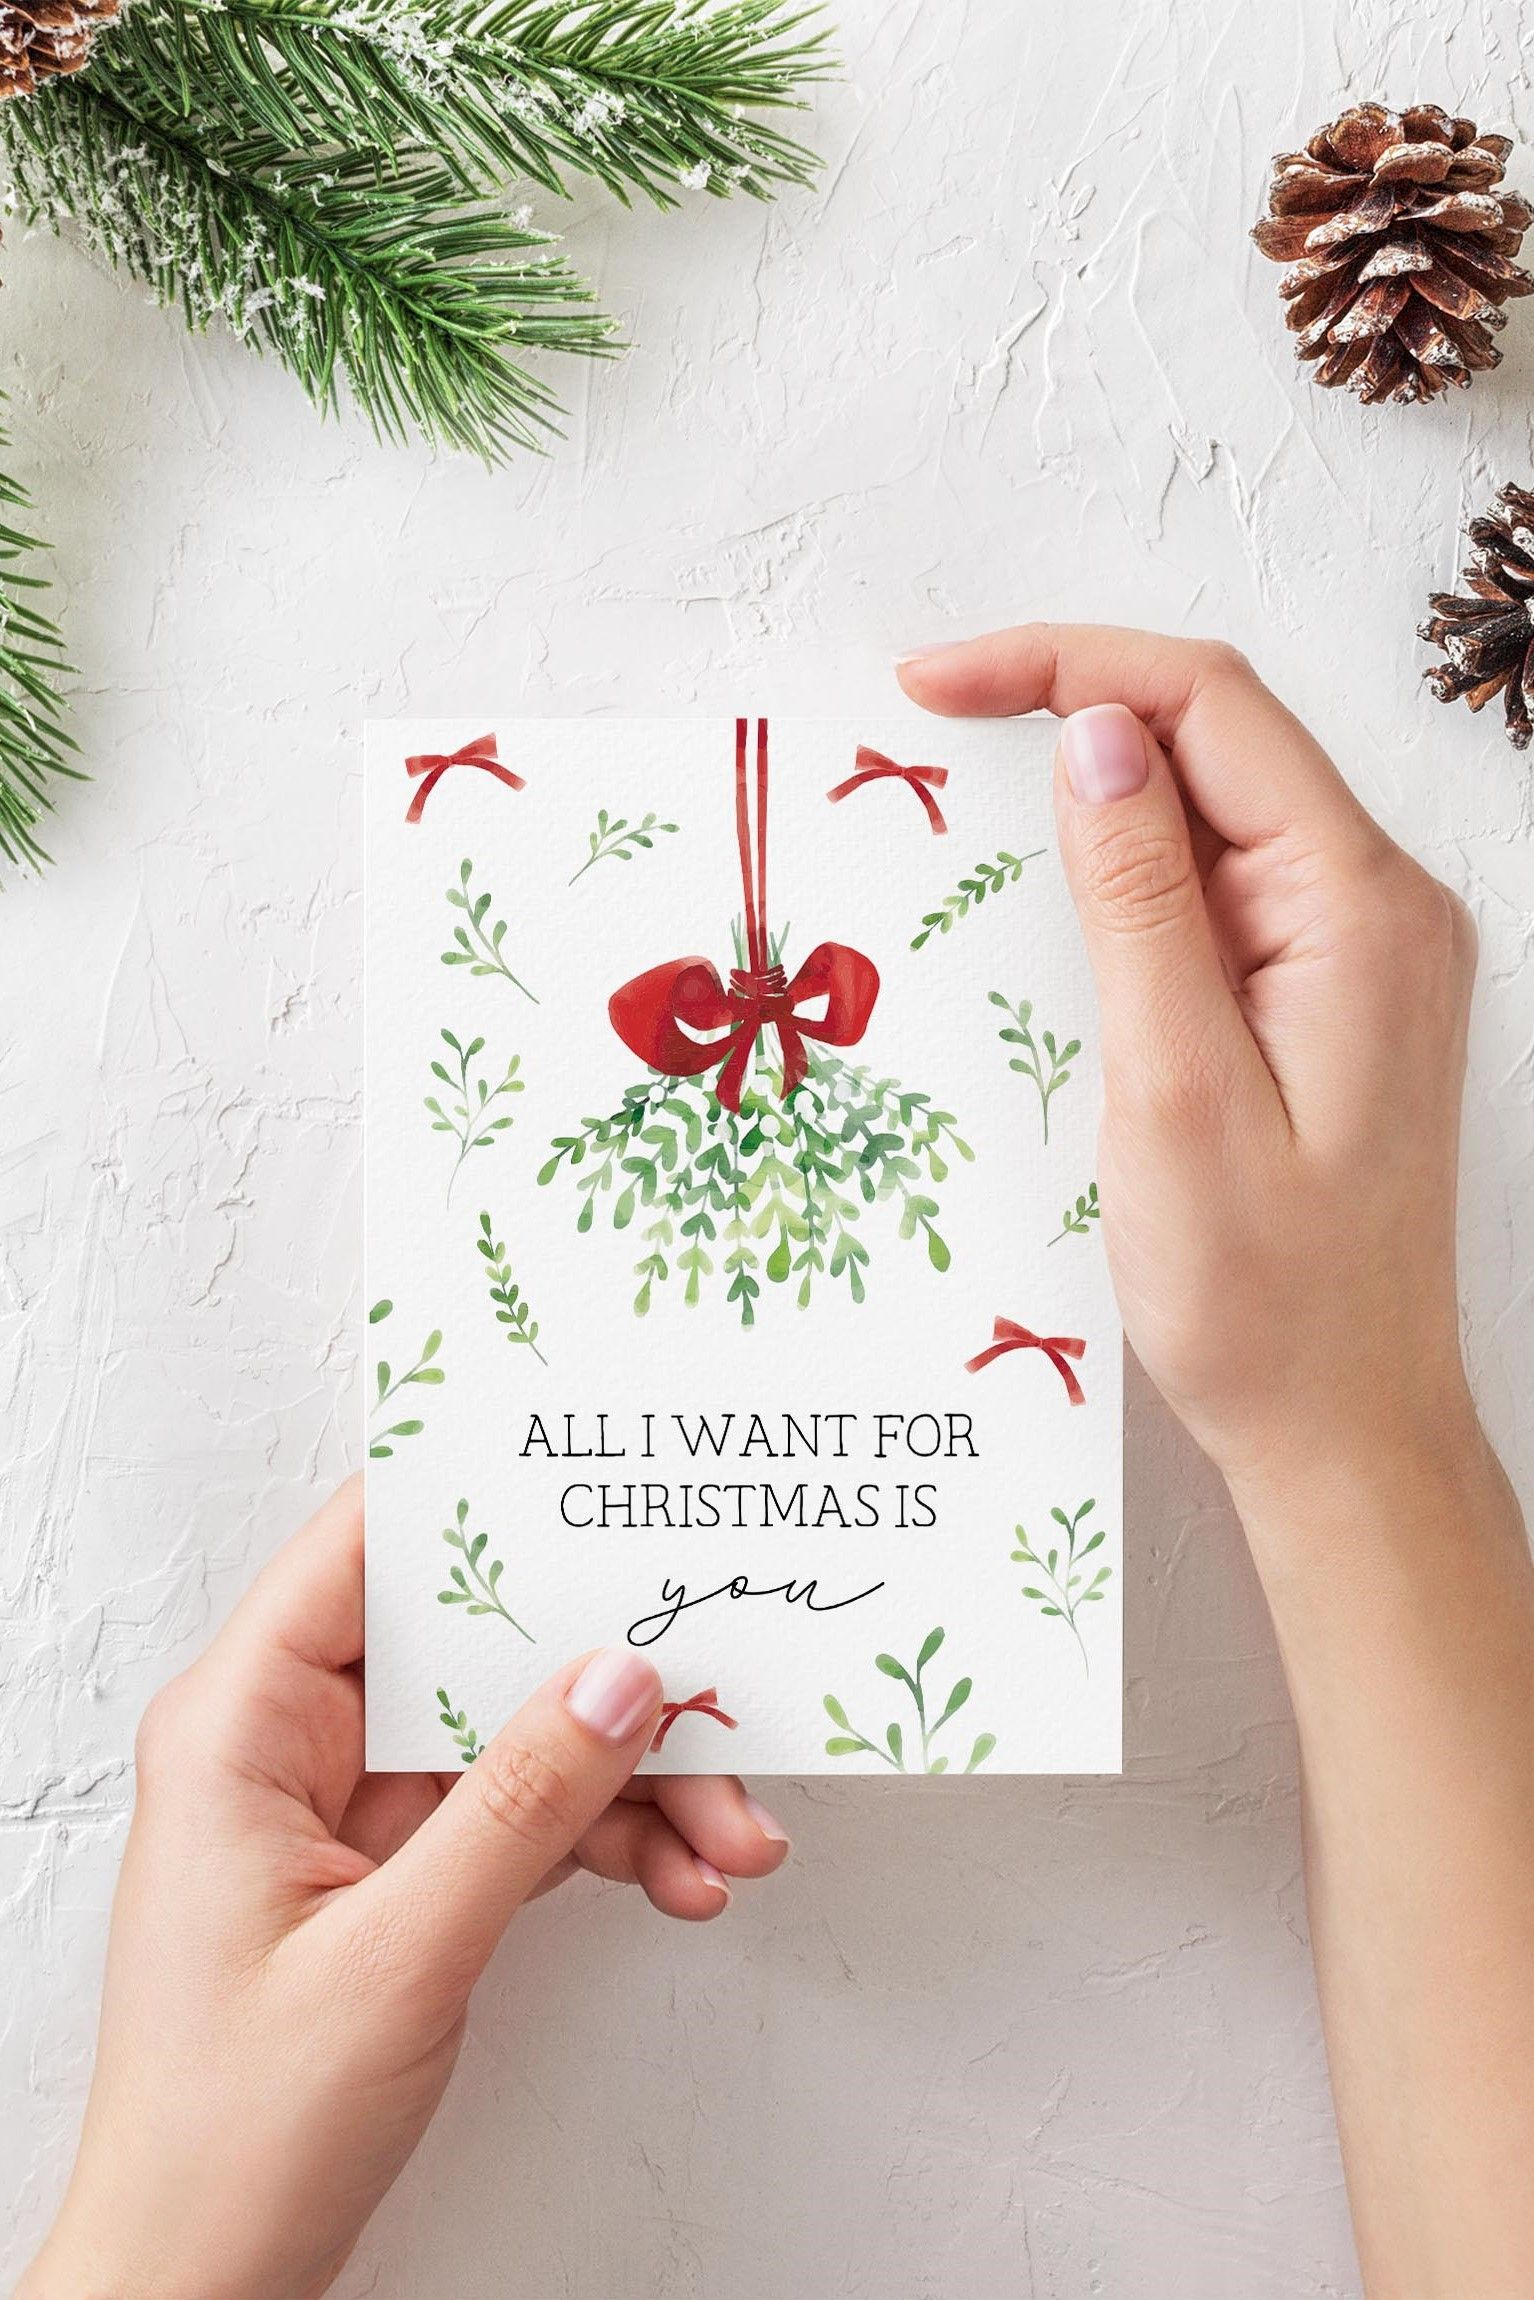 Printable Christmas Card Mistletoe Holiday Card All I Want For Christmas Is You Card For Husband Wife Boyfriend Girlfriend 5x7 Pdf Watercolor Christmas Cards Painted Christmas Cards Boyfriend Christmas Card